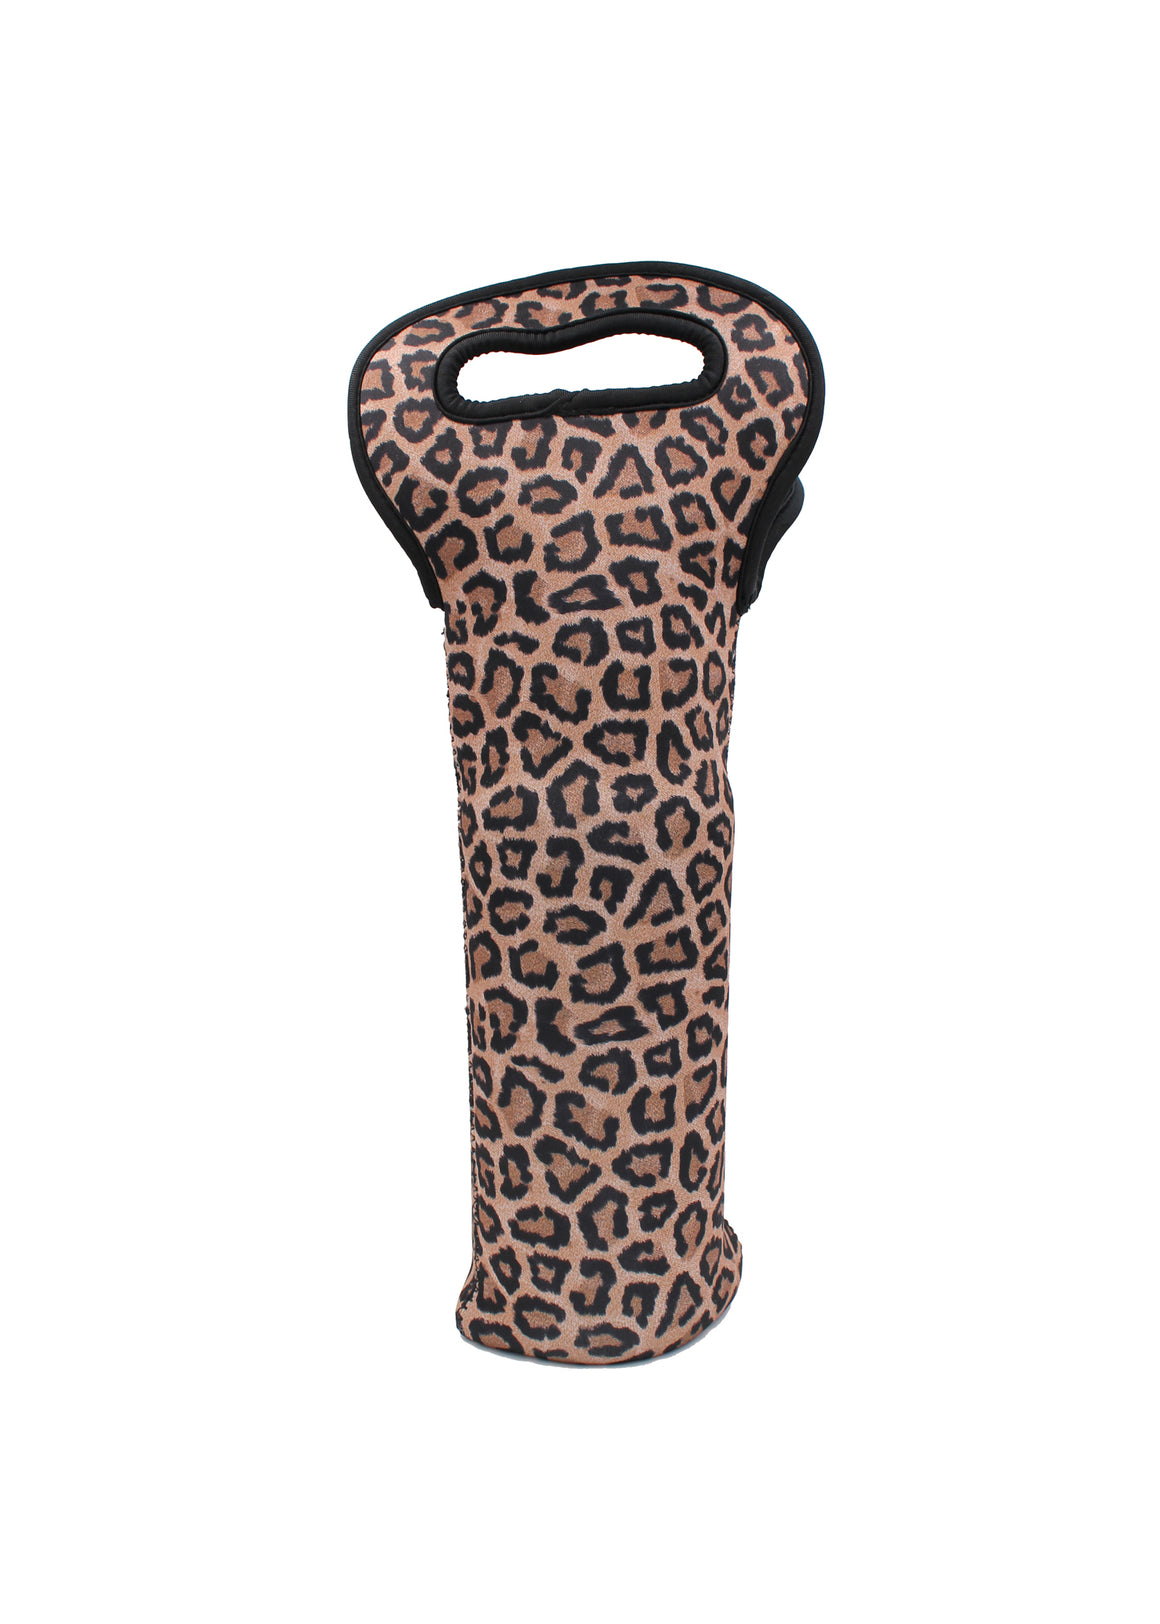 Leopard Bottle Tote